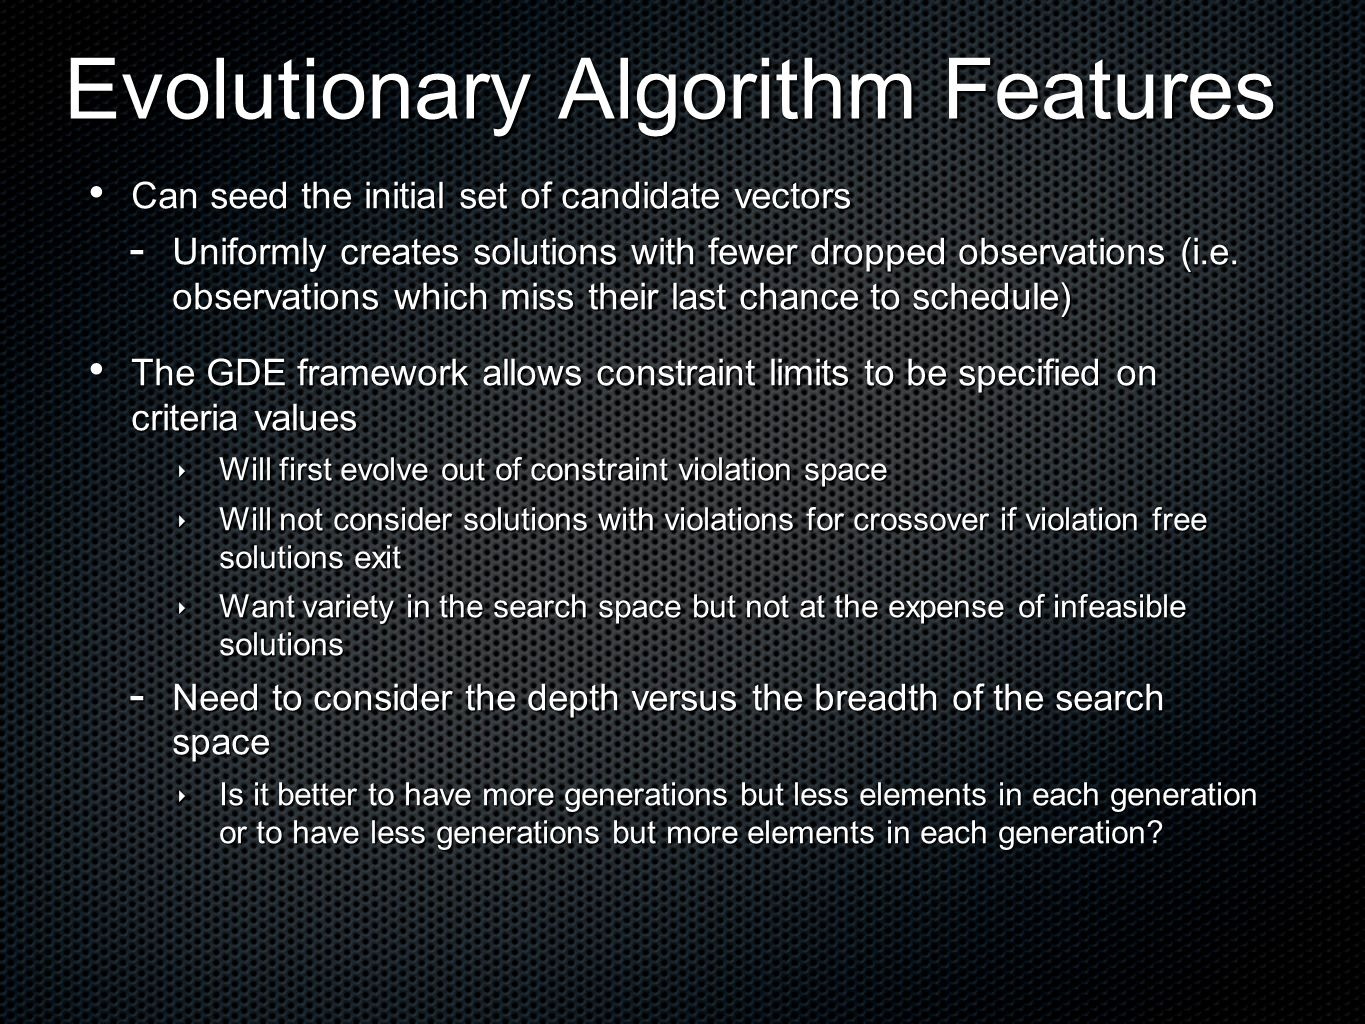 Evolutionary Algorithm Features Can seed the initial set of candidate vectors Can seed the initial set of candidate vectors  Uniformly creates solutions with fewer dropped observations (i.e.